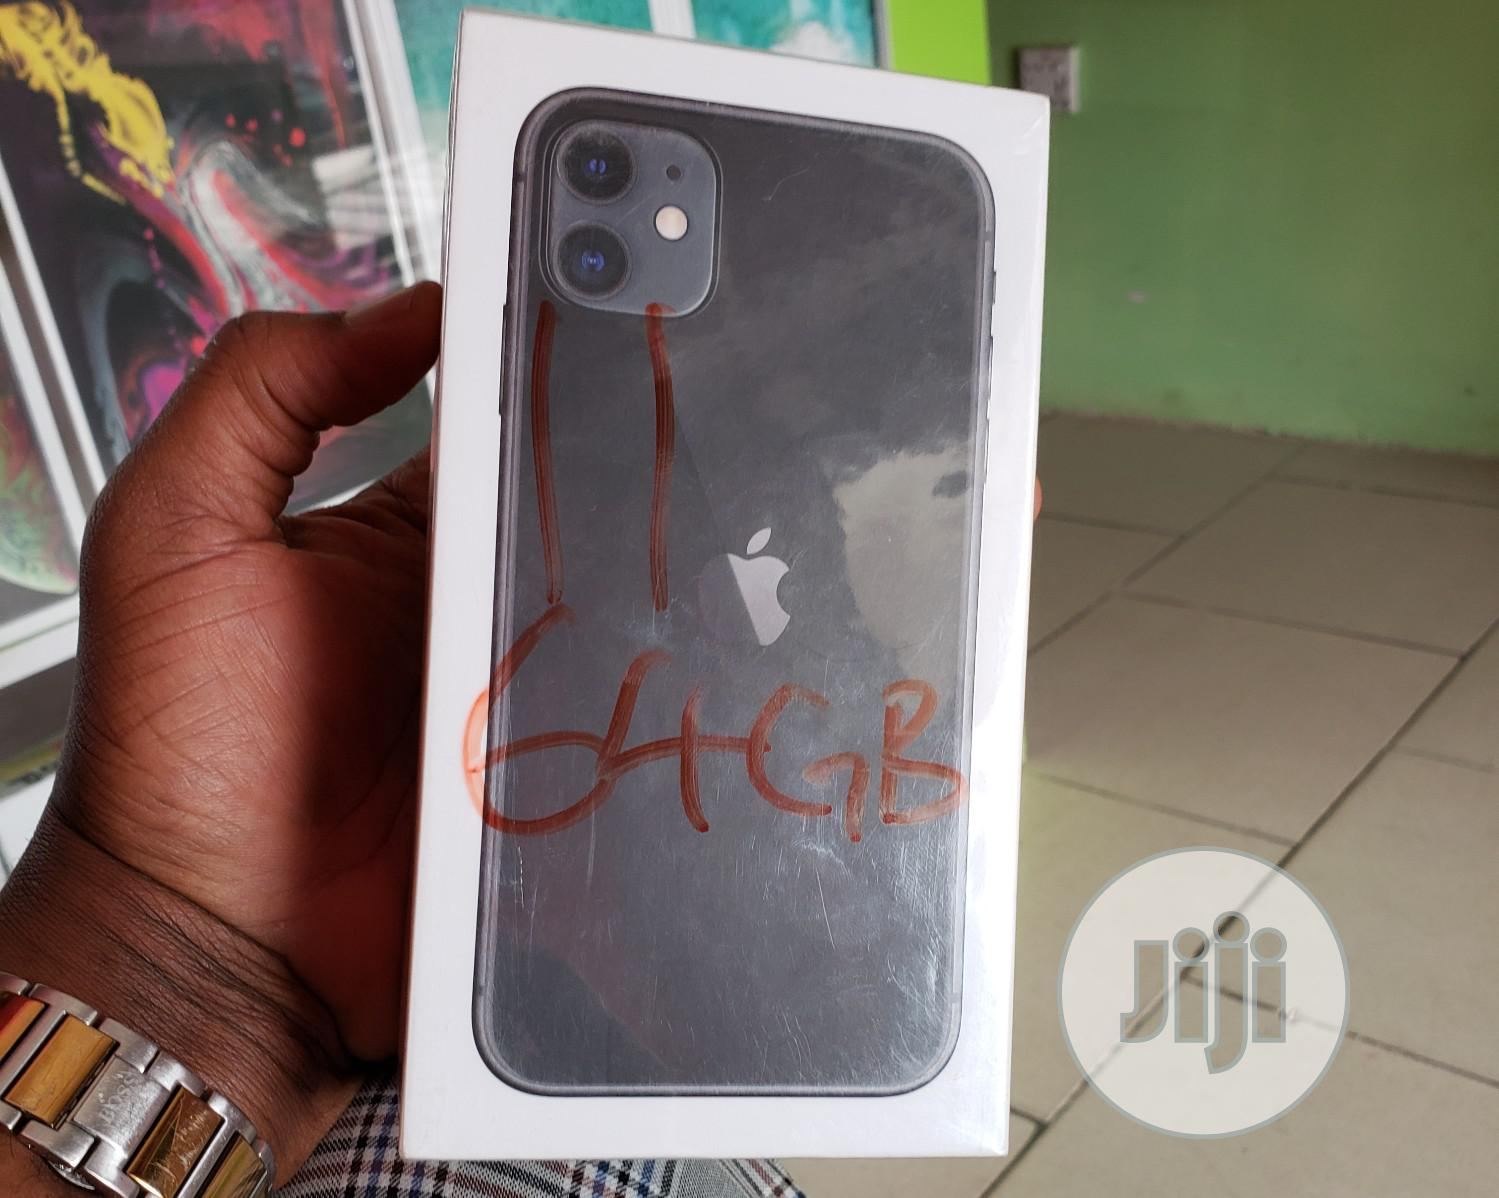 New Apple iPhone 11 64 GB | Mobile Phones for sale in Wuse 2, Abuja (FCT) State, Nigeria